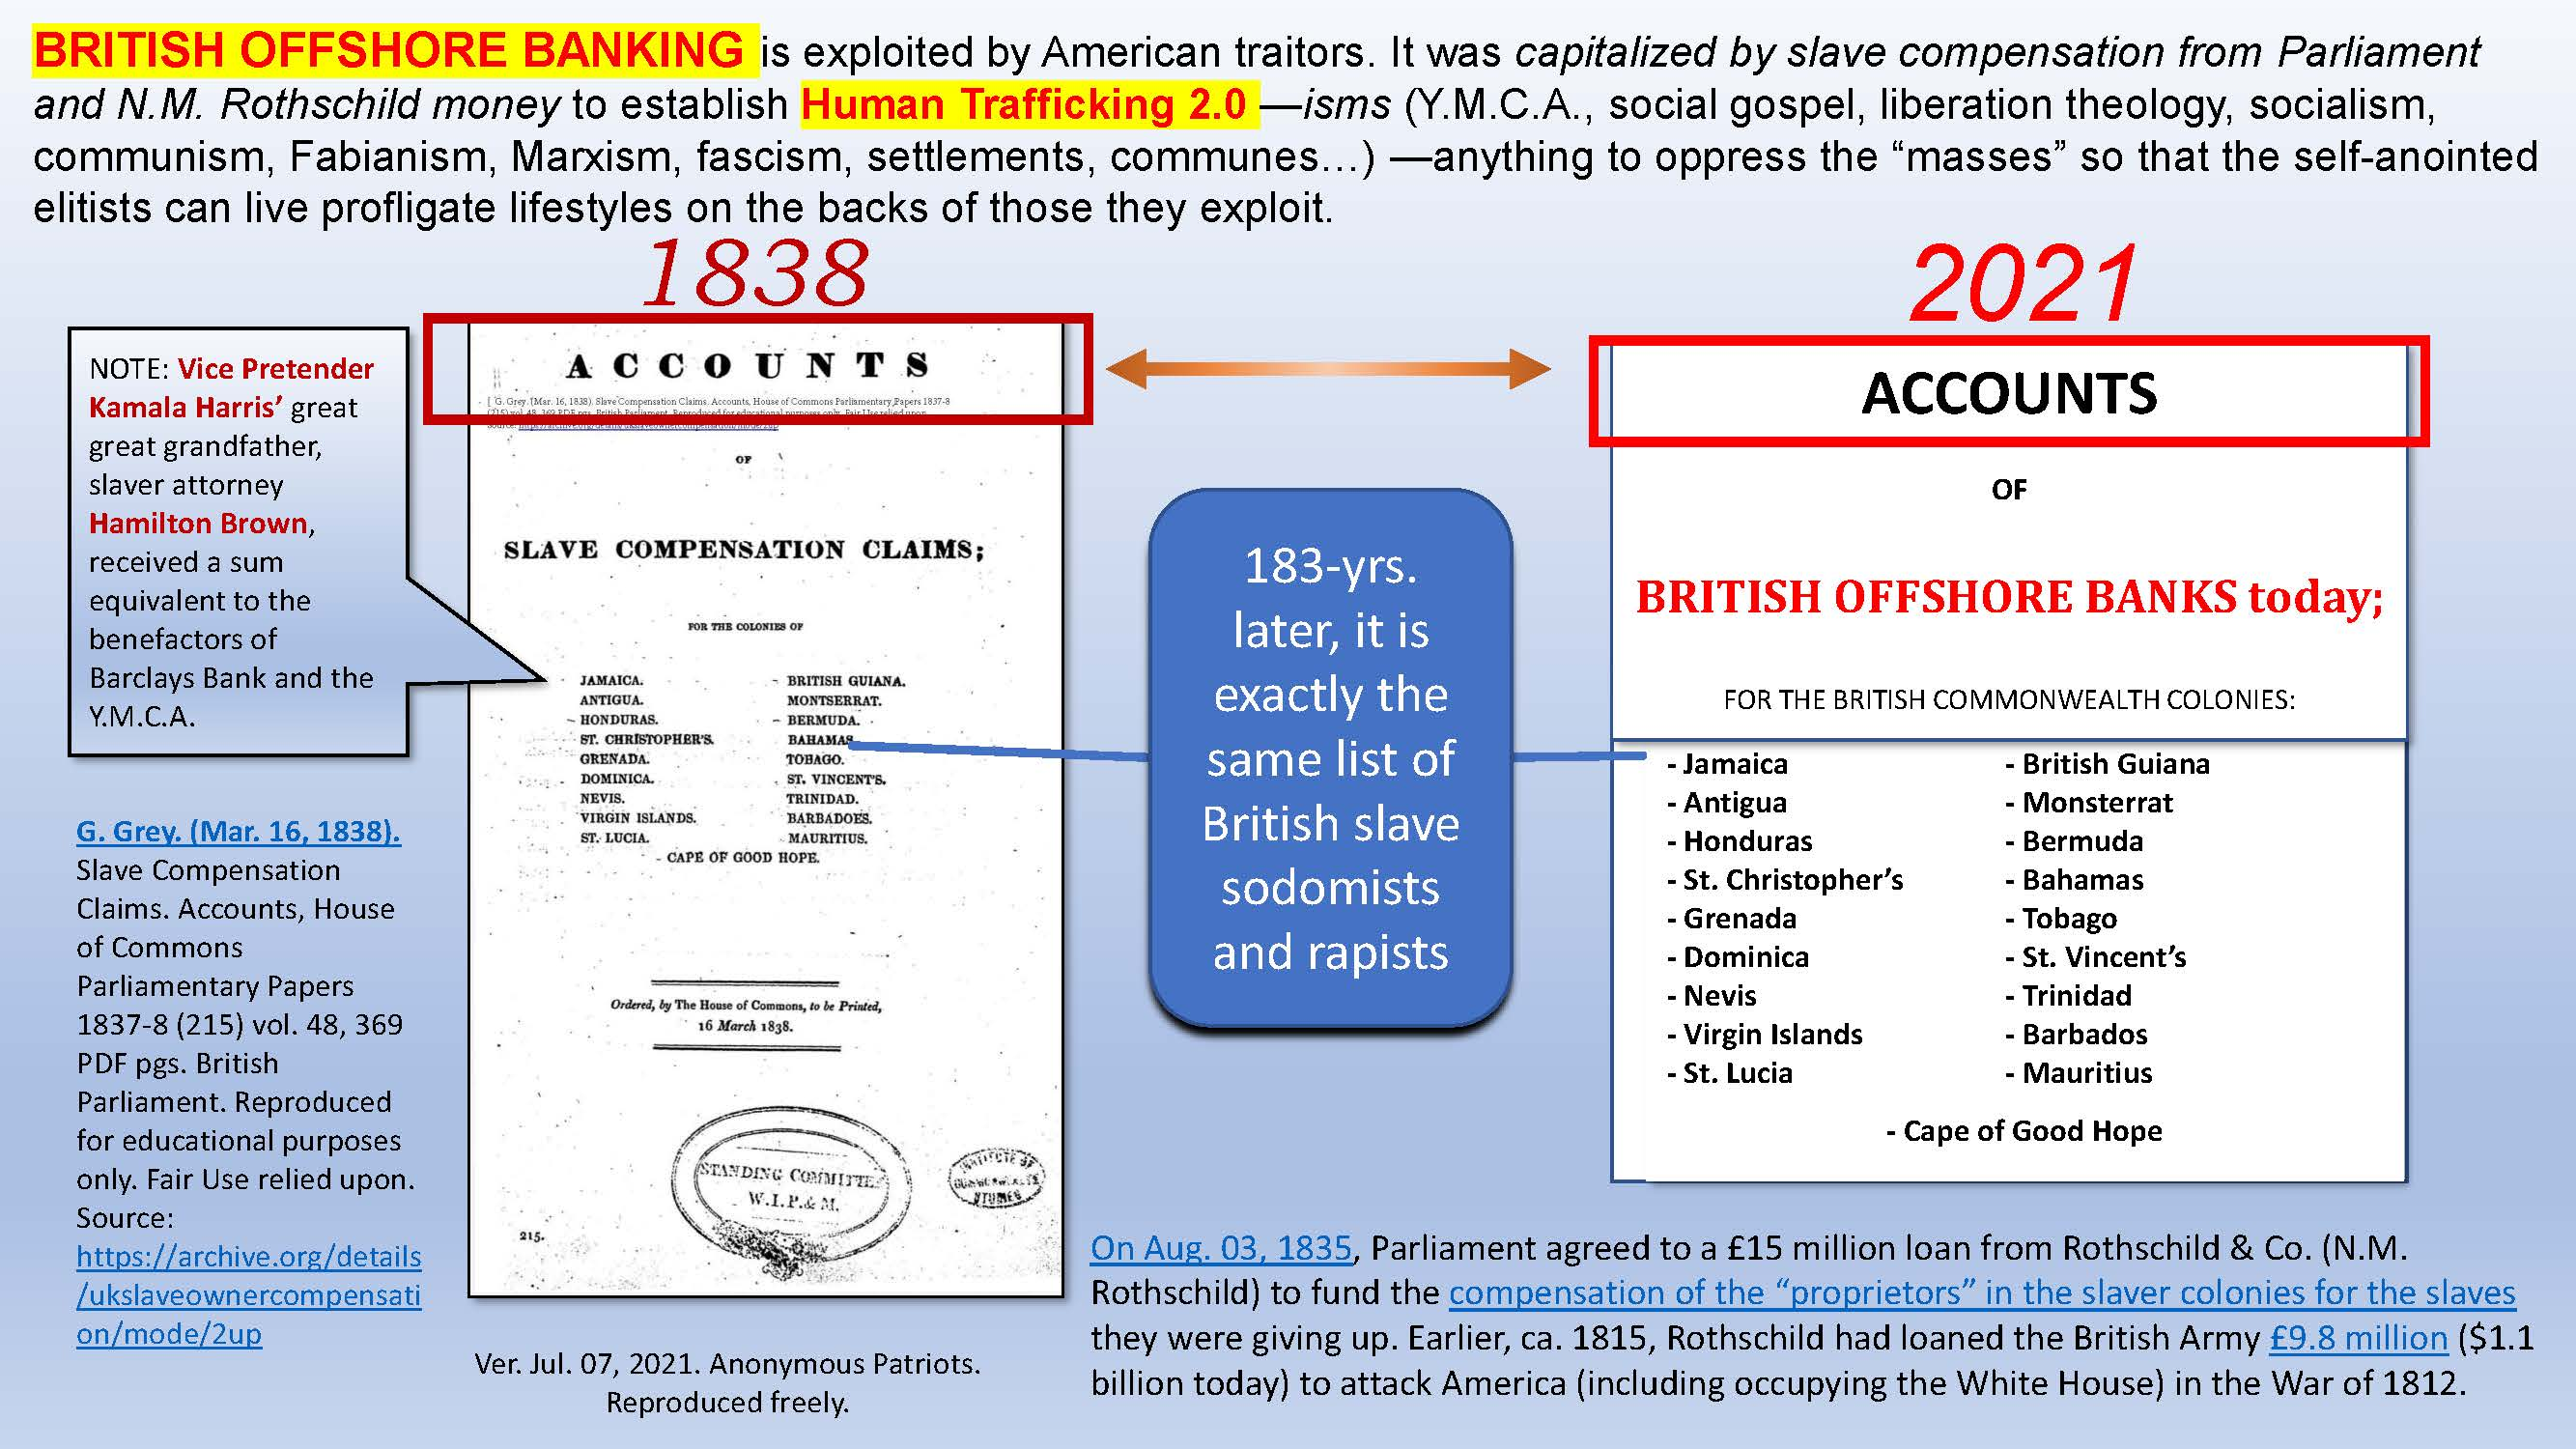 Research. (Jul. 07, 2021). British Empire Slave Compensation Claims compared to British Offshore tax havens today. Anonymous Patriots.